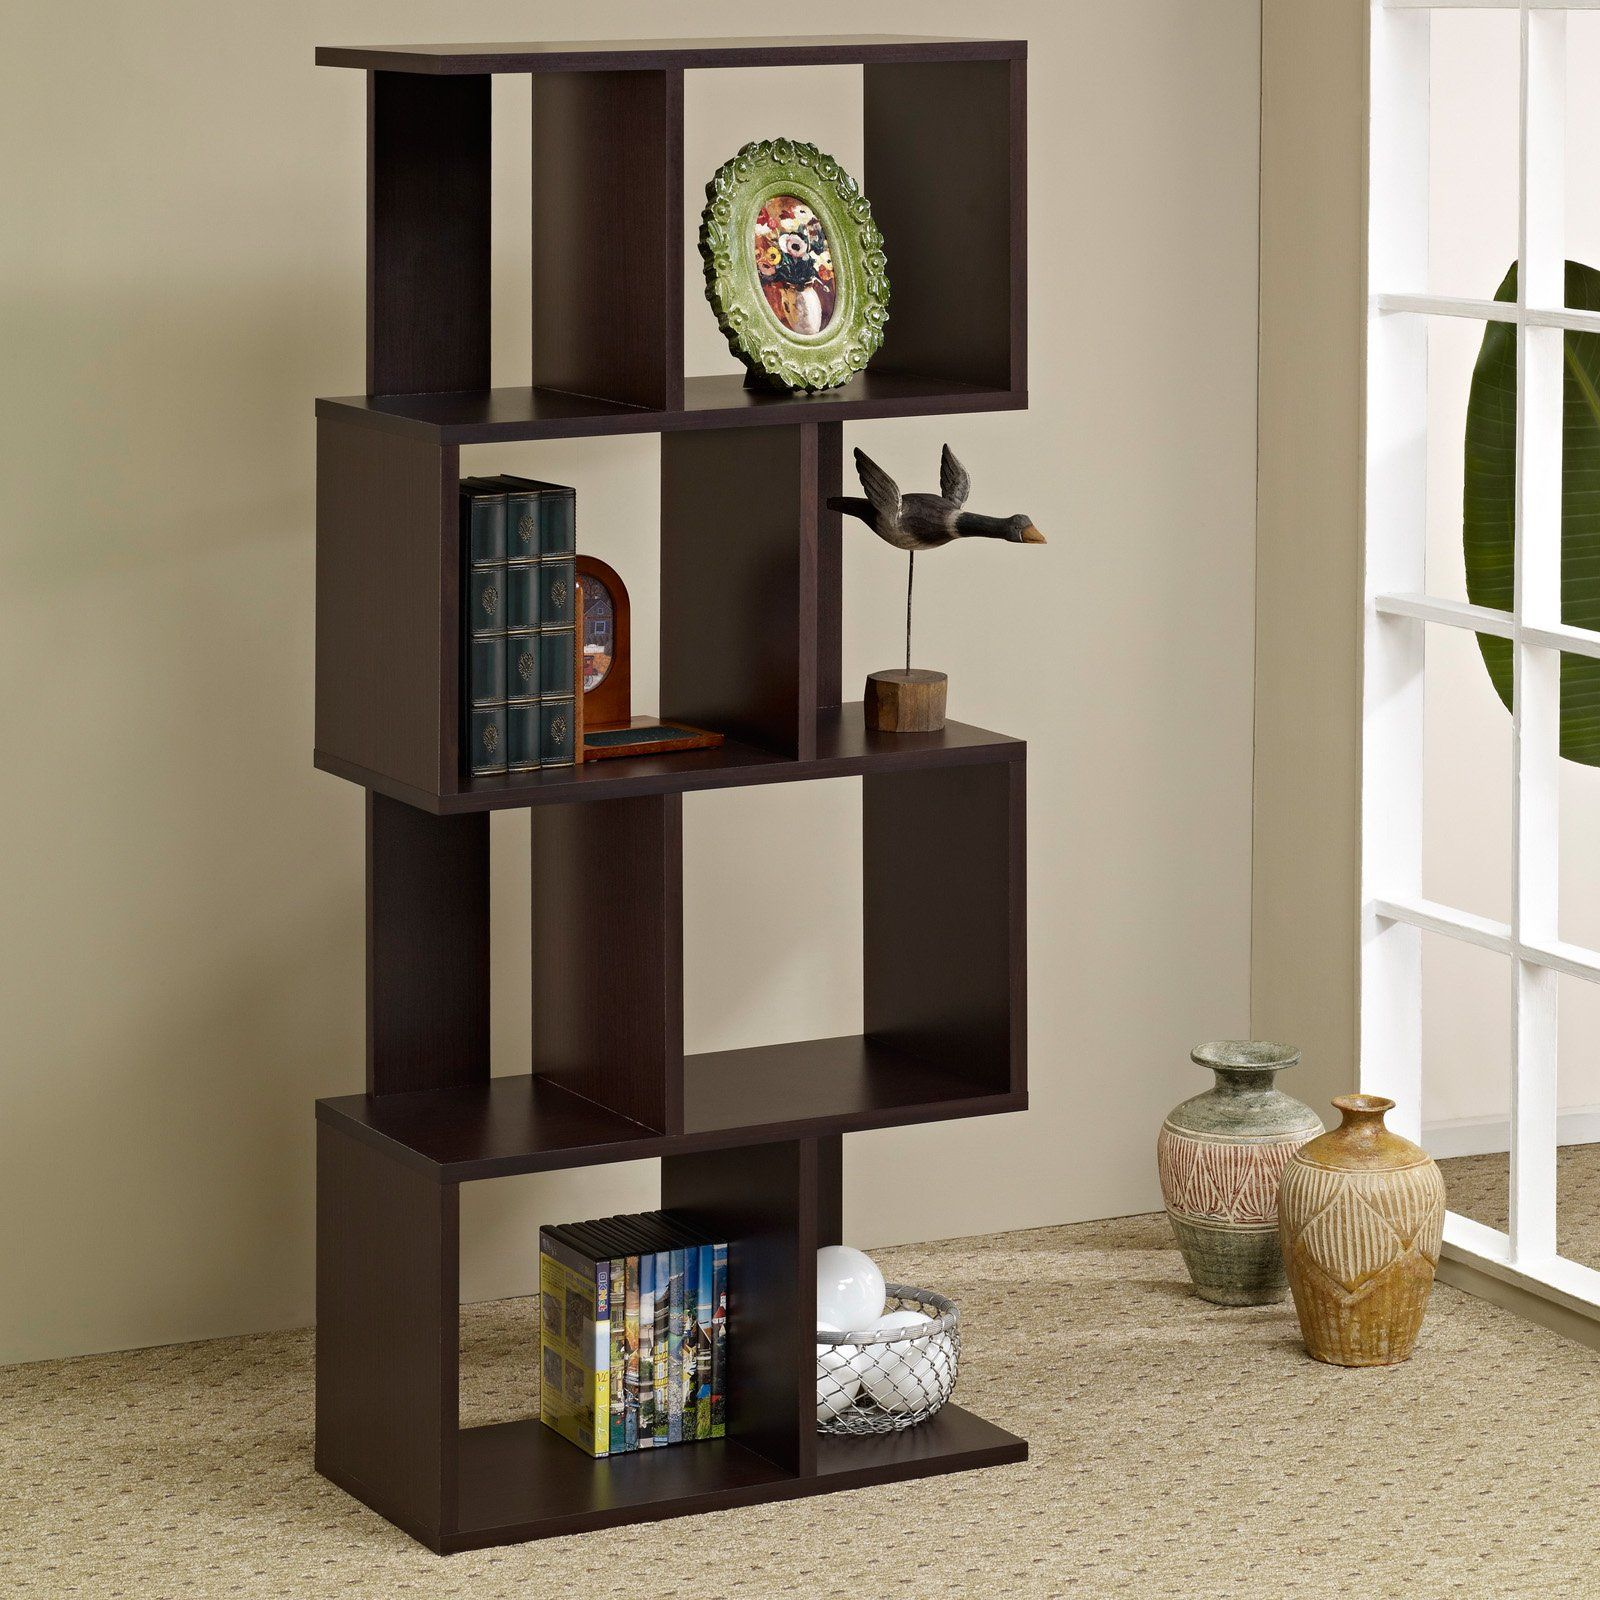 divider bookcase ideas room bookshelf diy dividers wall pony